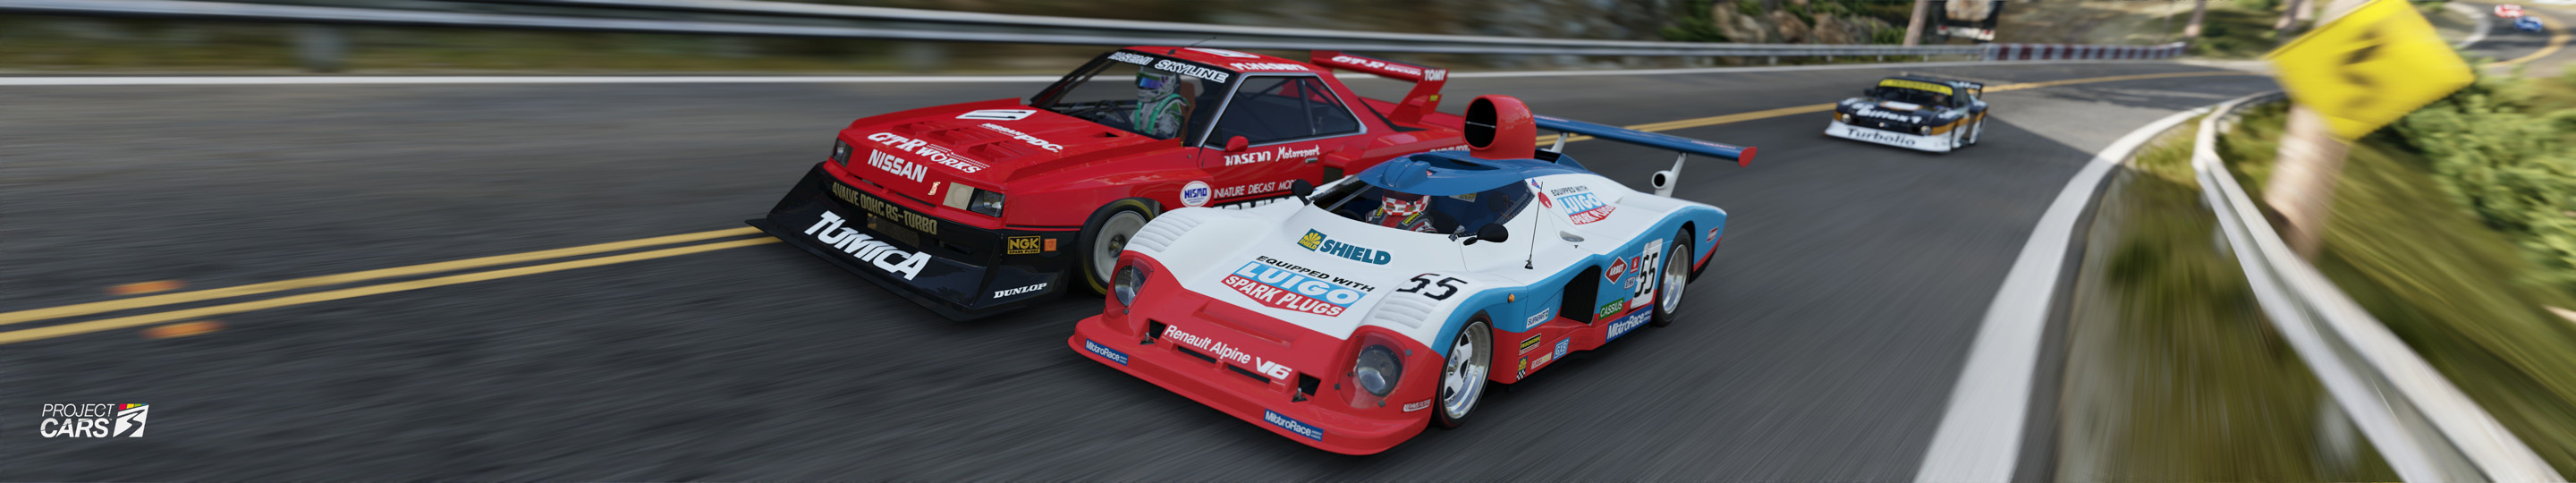 3 PROJECT CARS 3 ALPINE A442B at CALI HIGHWAY REVERSE copy.jpg